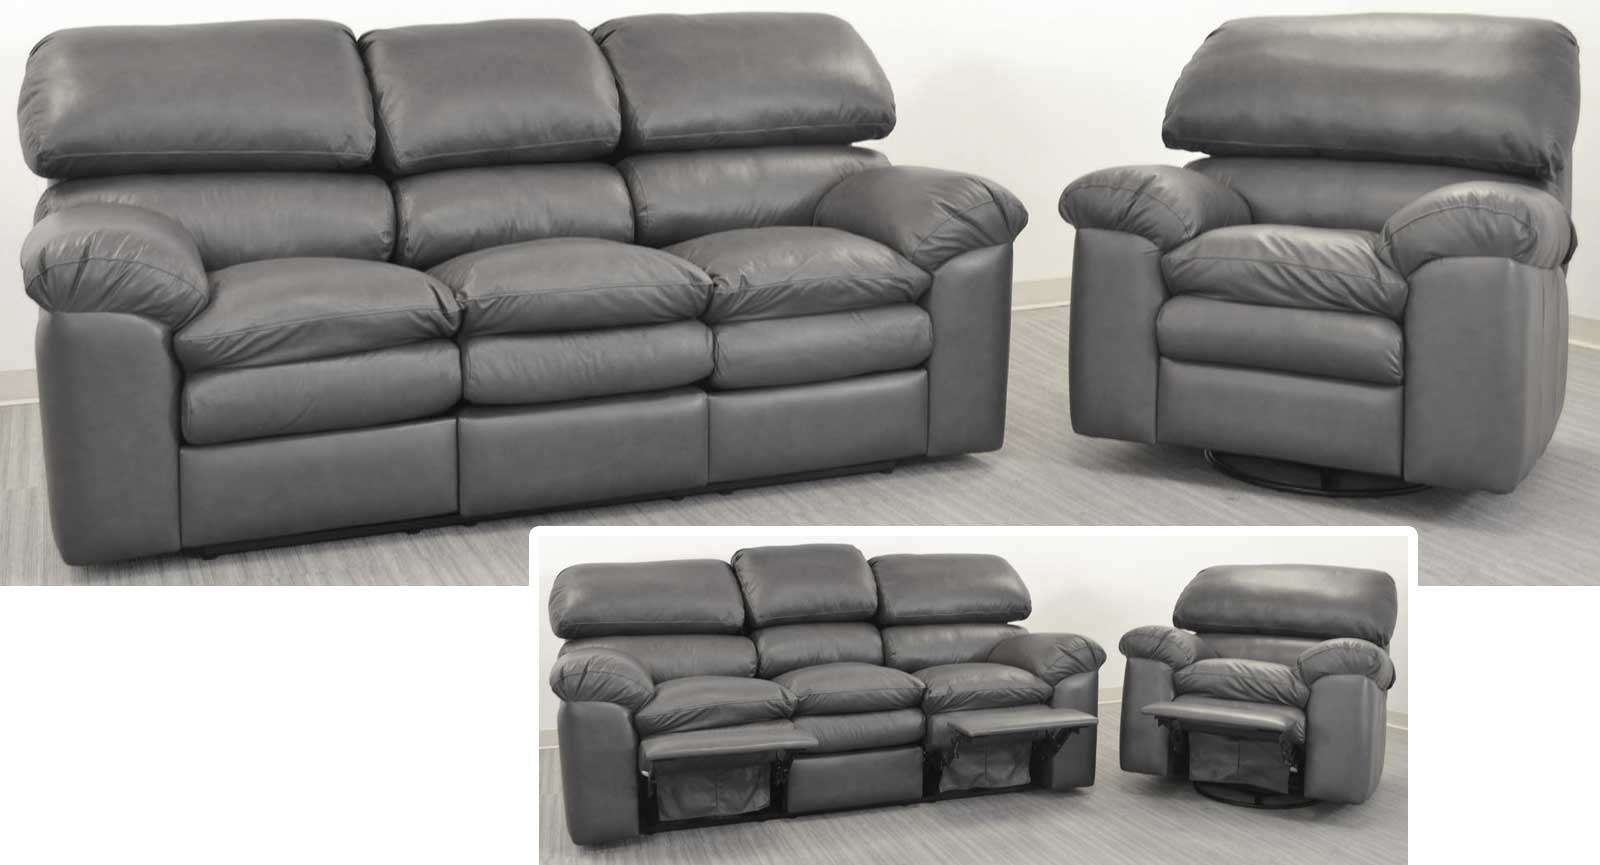 Sofa With 2 Incliners Swivel Glider Recliner A